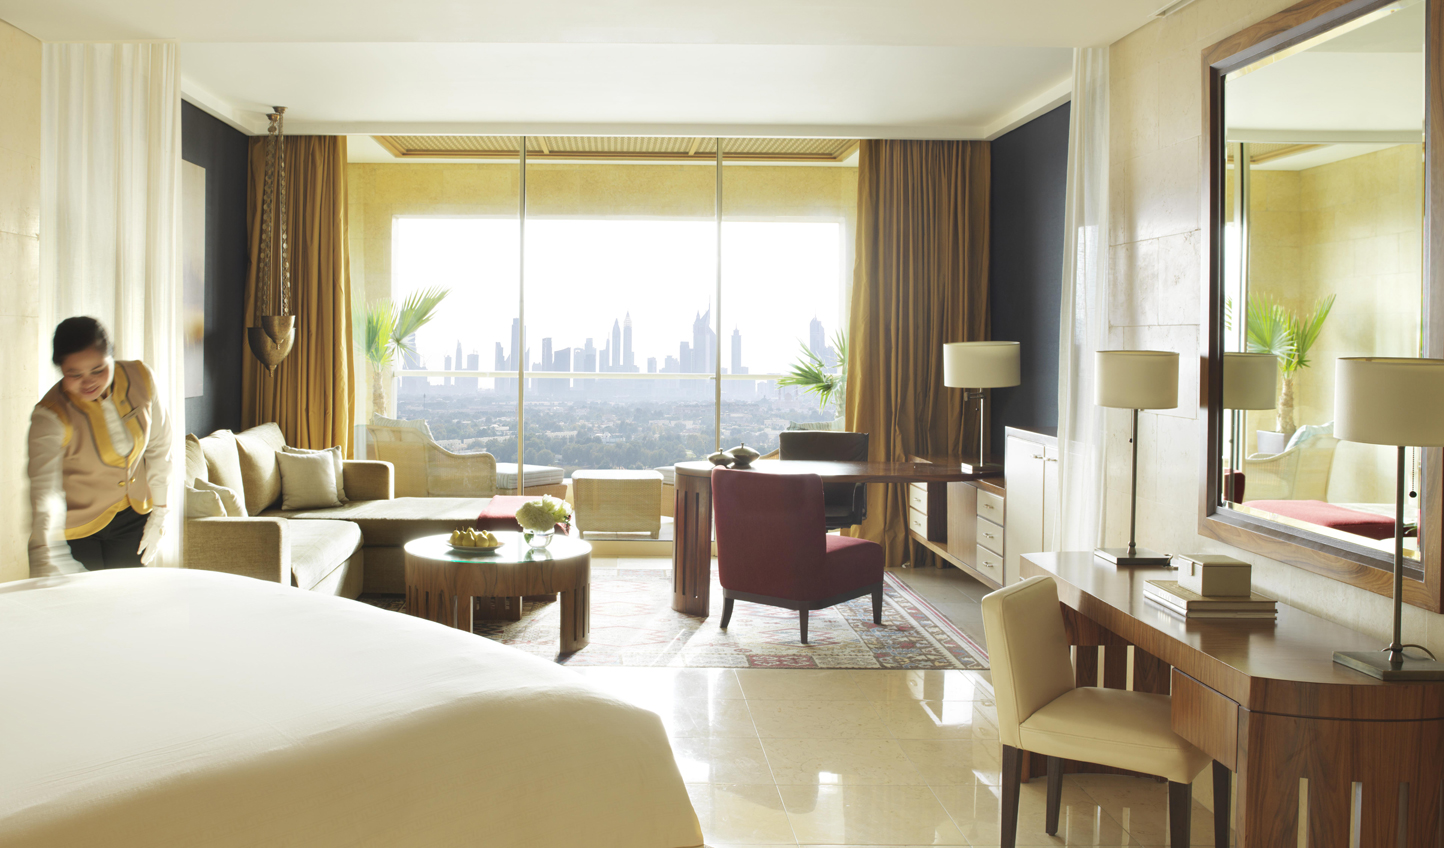 Wake up to breathtaking views over the Dubai skyline